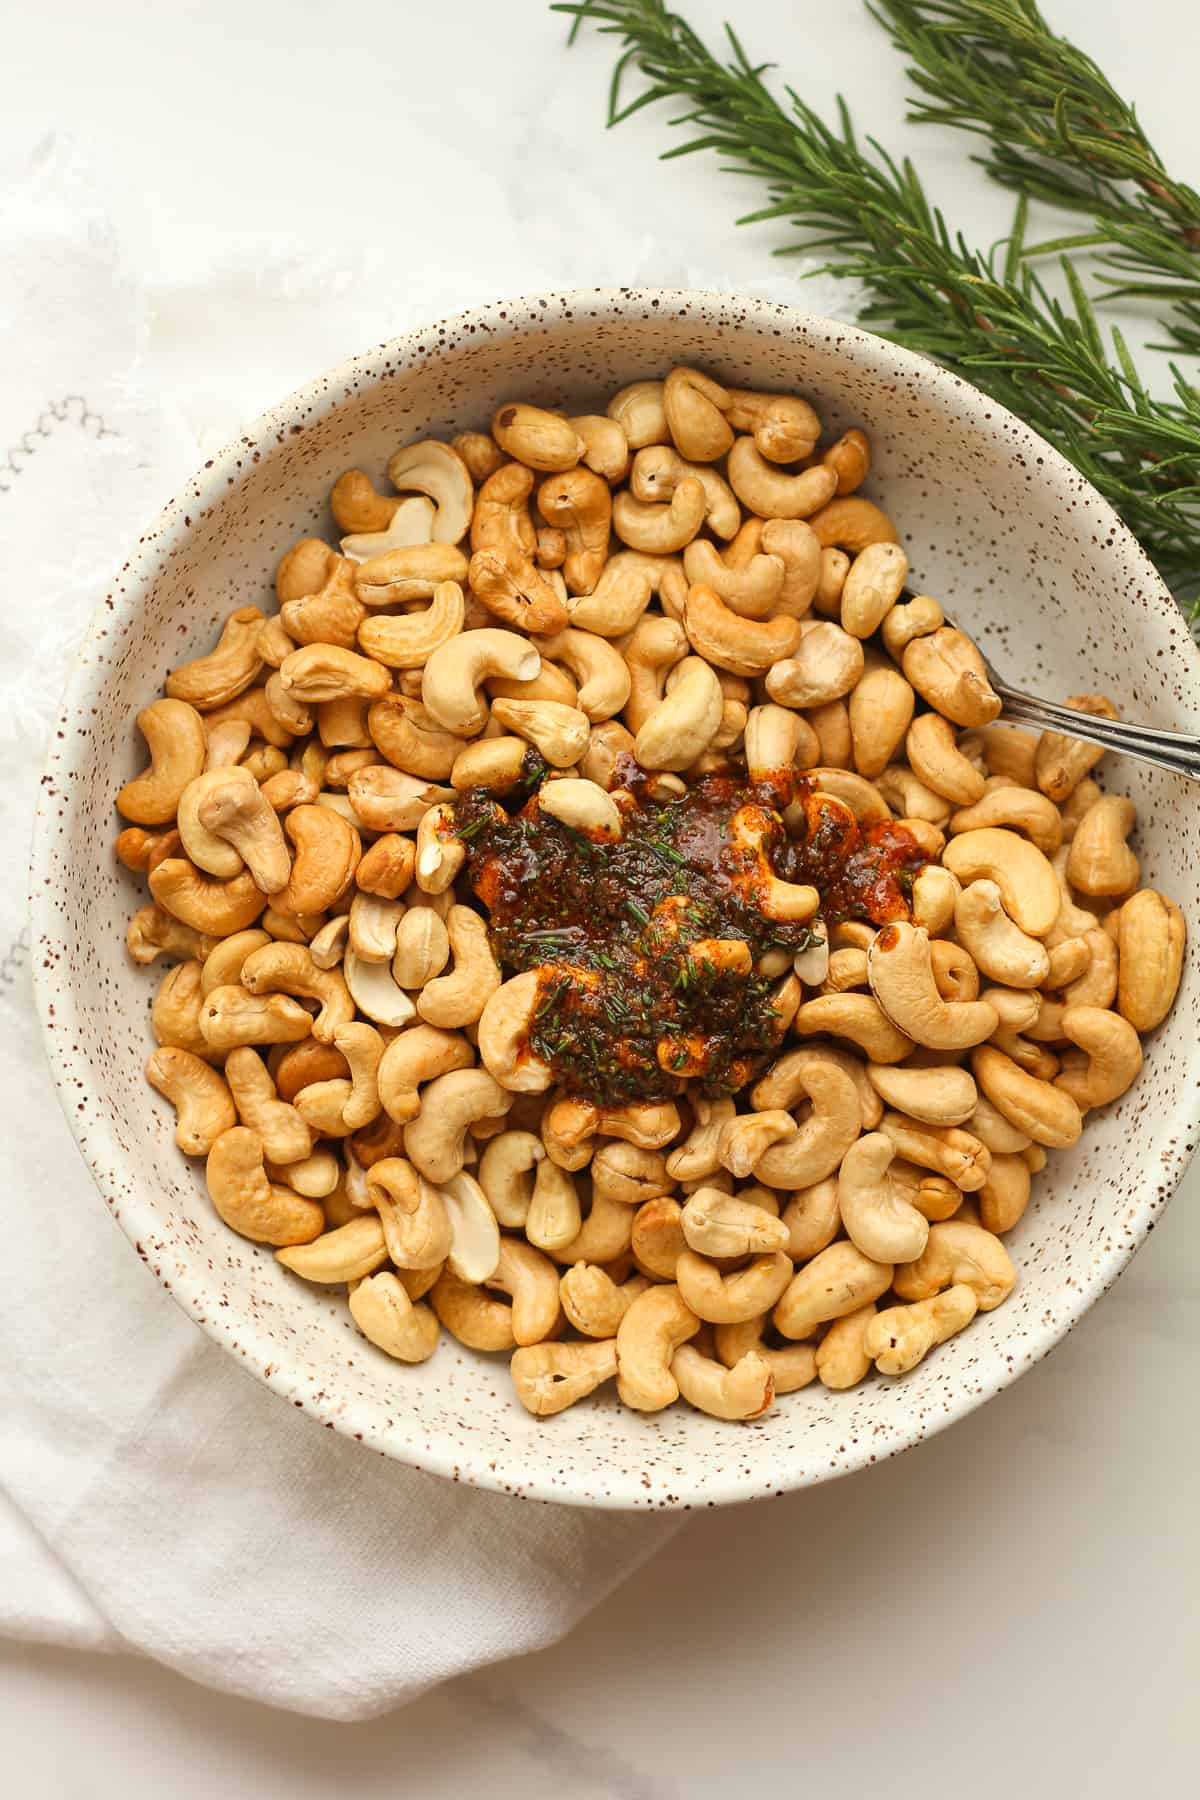 A bowl of the raw cashews with the seasoning mix.